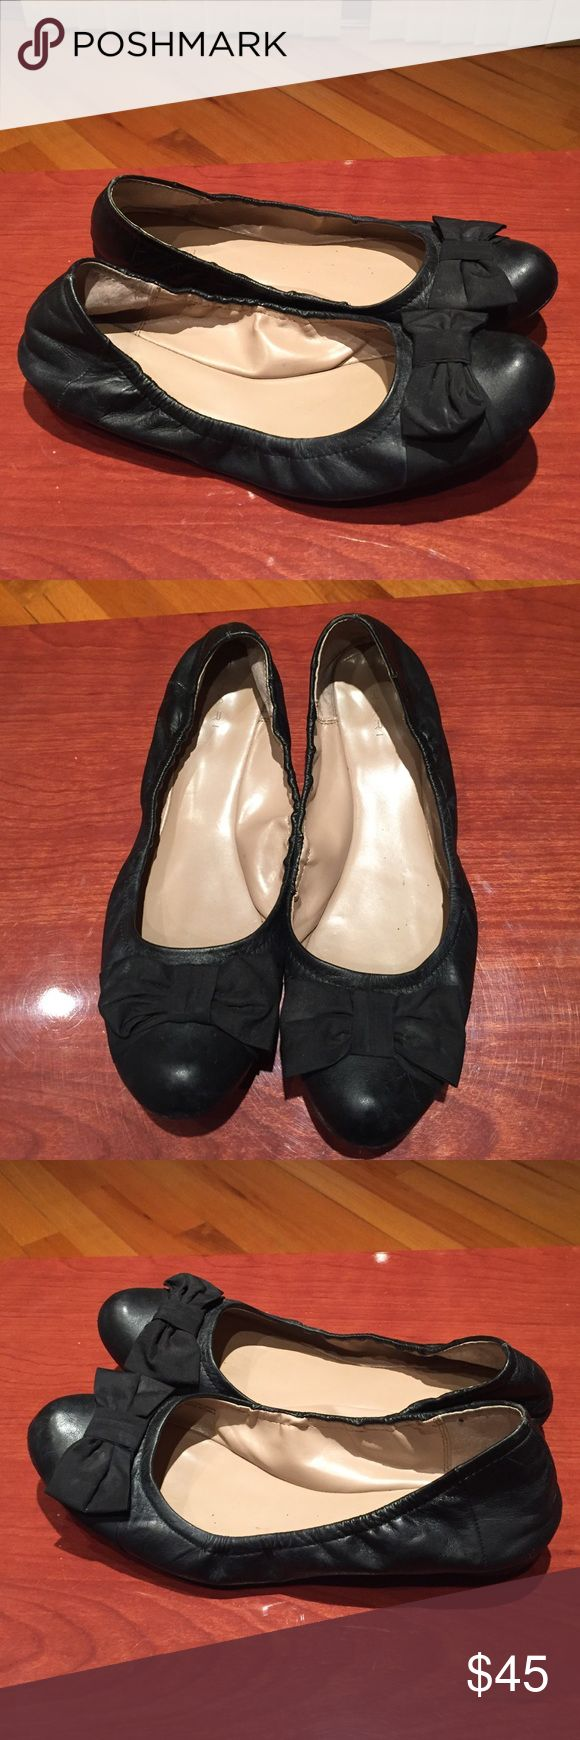 Tahari Villa black leather flats size 10✨ Super comfy flats for everyday, worn several times Tahari Shoes Flats & Loafers